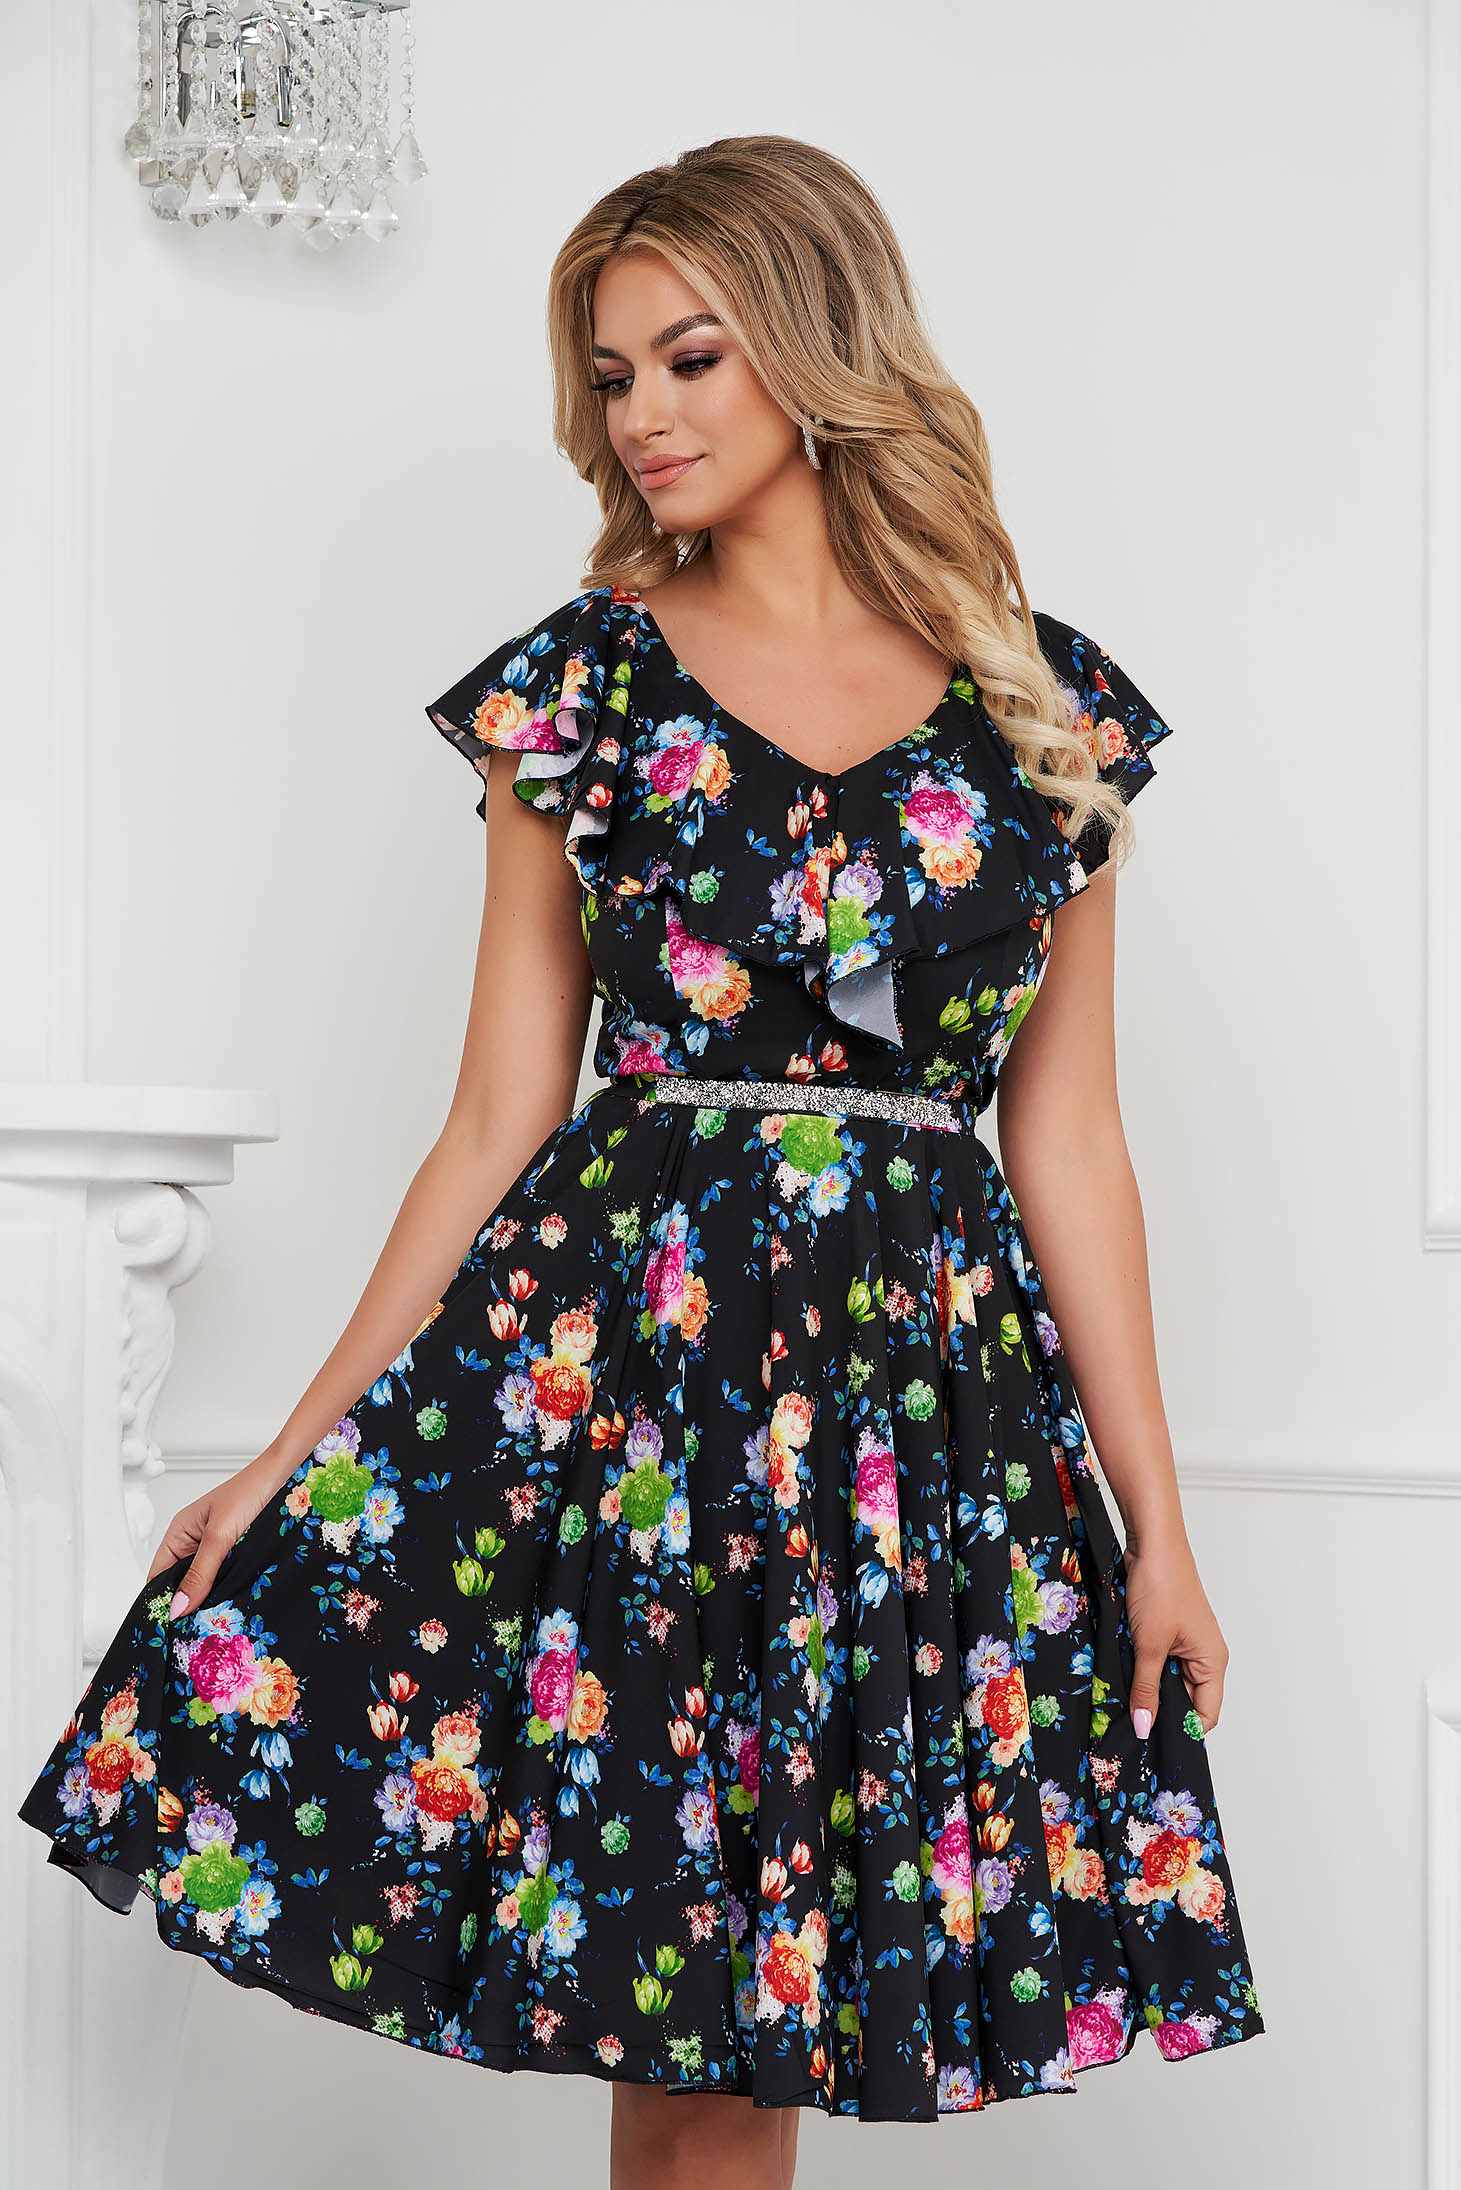 StarShinerS dress cloche occasional midi soft fabric with ruffle details detachable cord